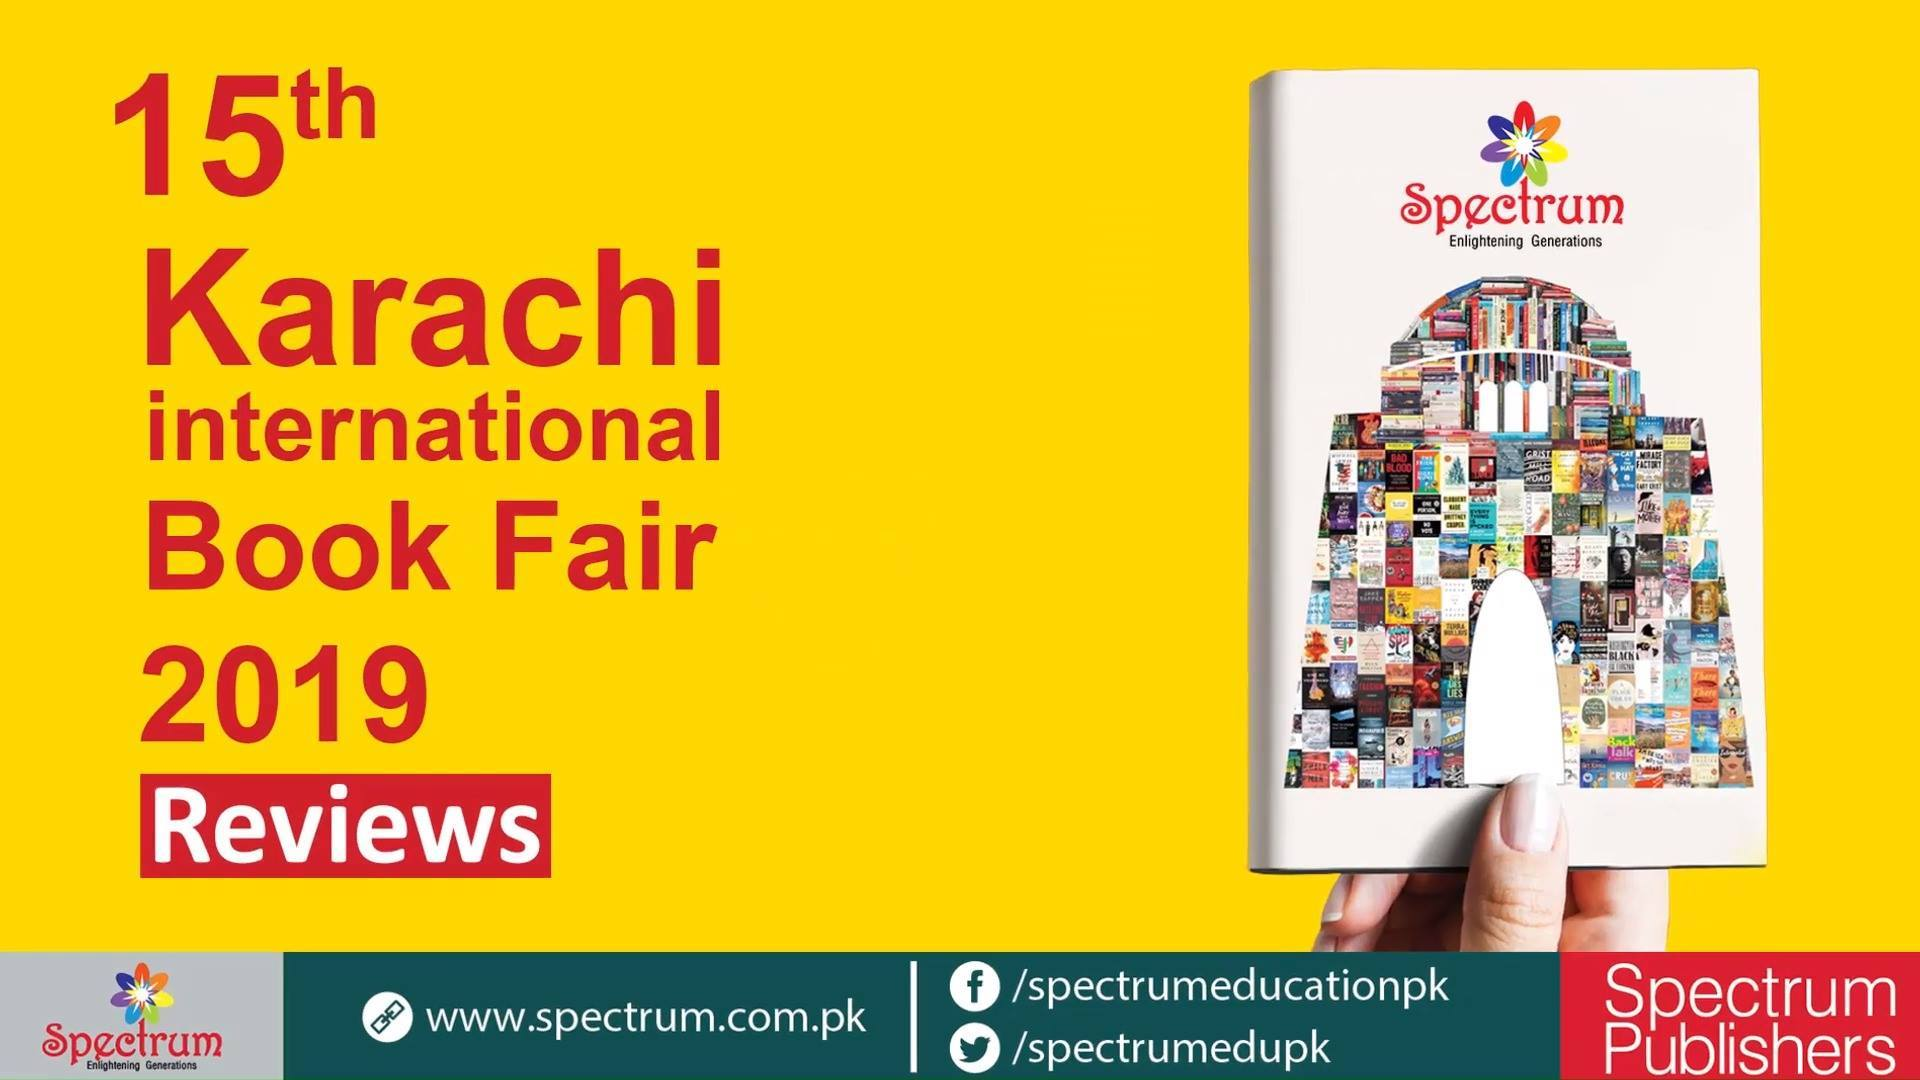 Reviews About Spectrum Products at Book fair 2019